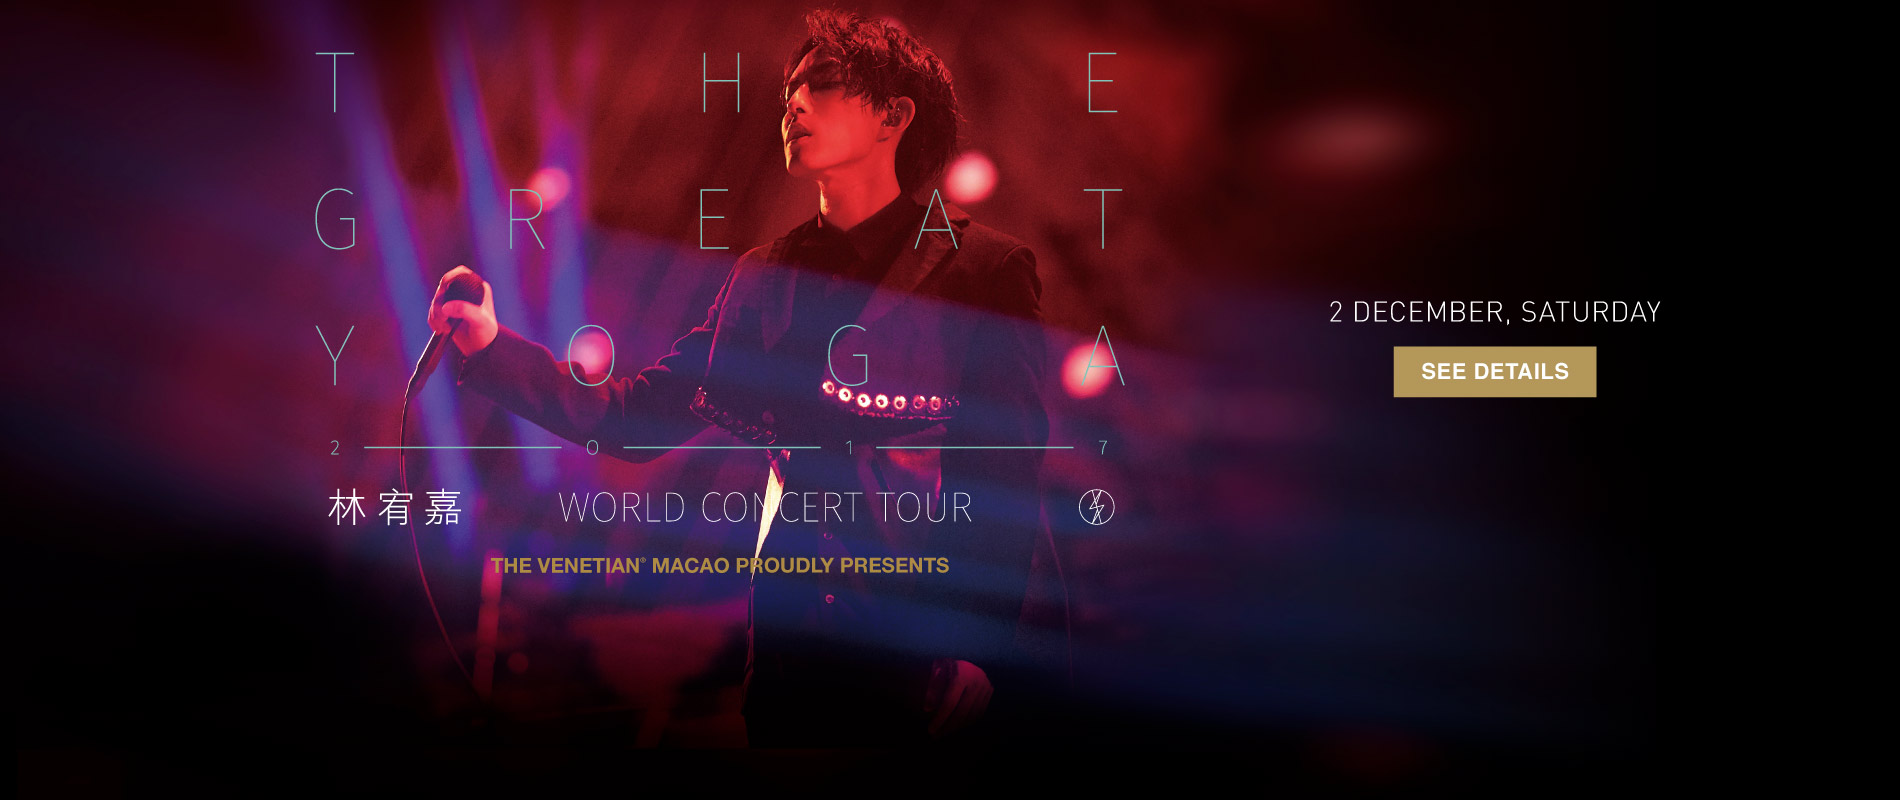 THE GREAT YOGA 2017 World Concert Tour - Macao